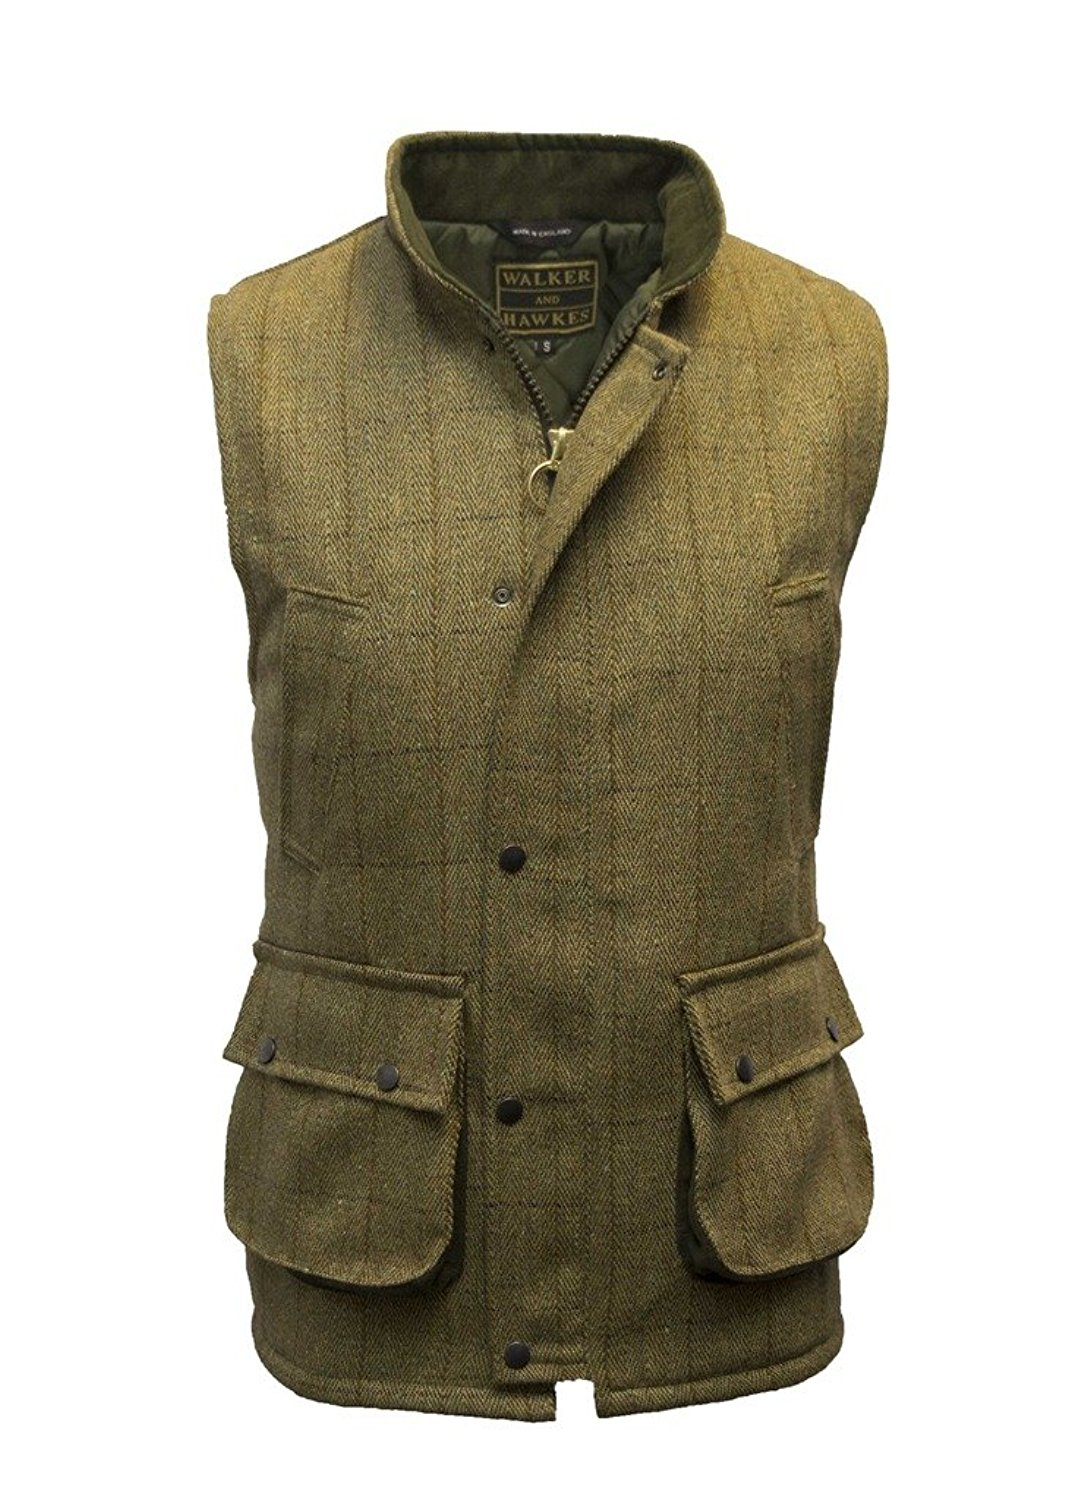 837f3fbc Get Quotations · Walker and Hawkes Men's Derby Tweed Shooting Waistcoat  Country Gilet